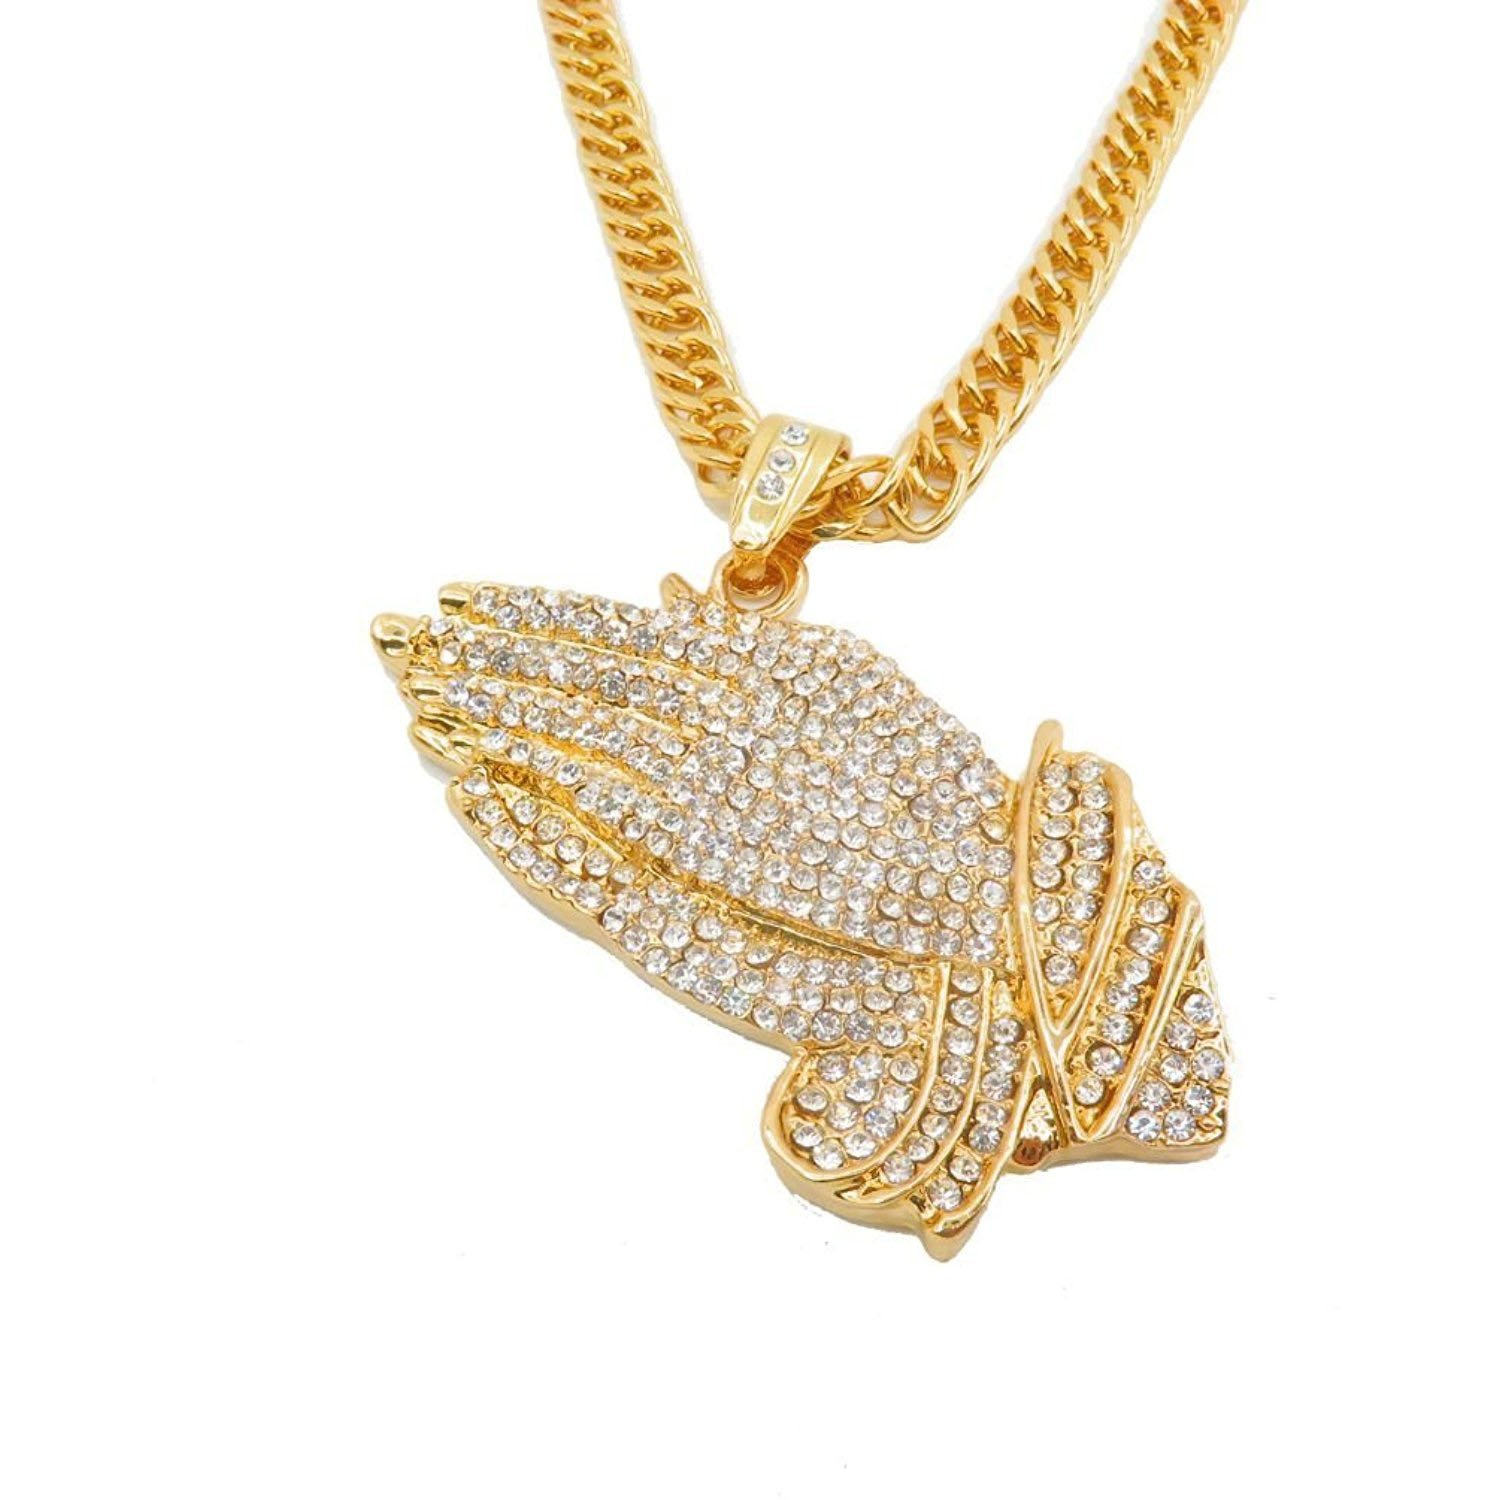 987db2b0ac374 MENS ICED OUT GOLDEN/Silver PRAYING HANDS PENDANT 35